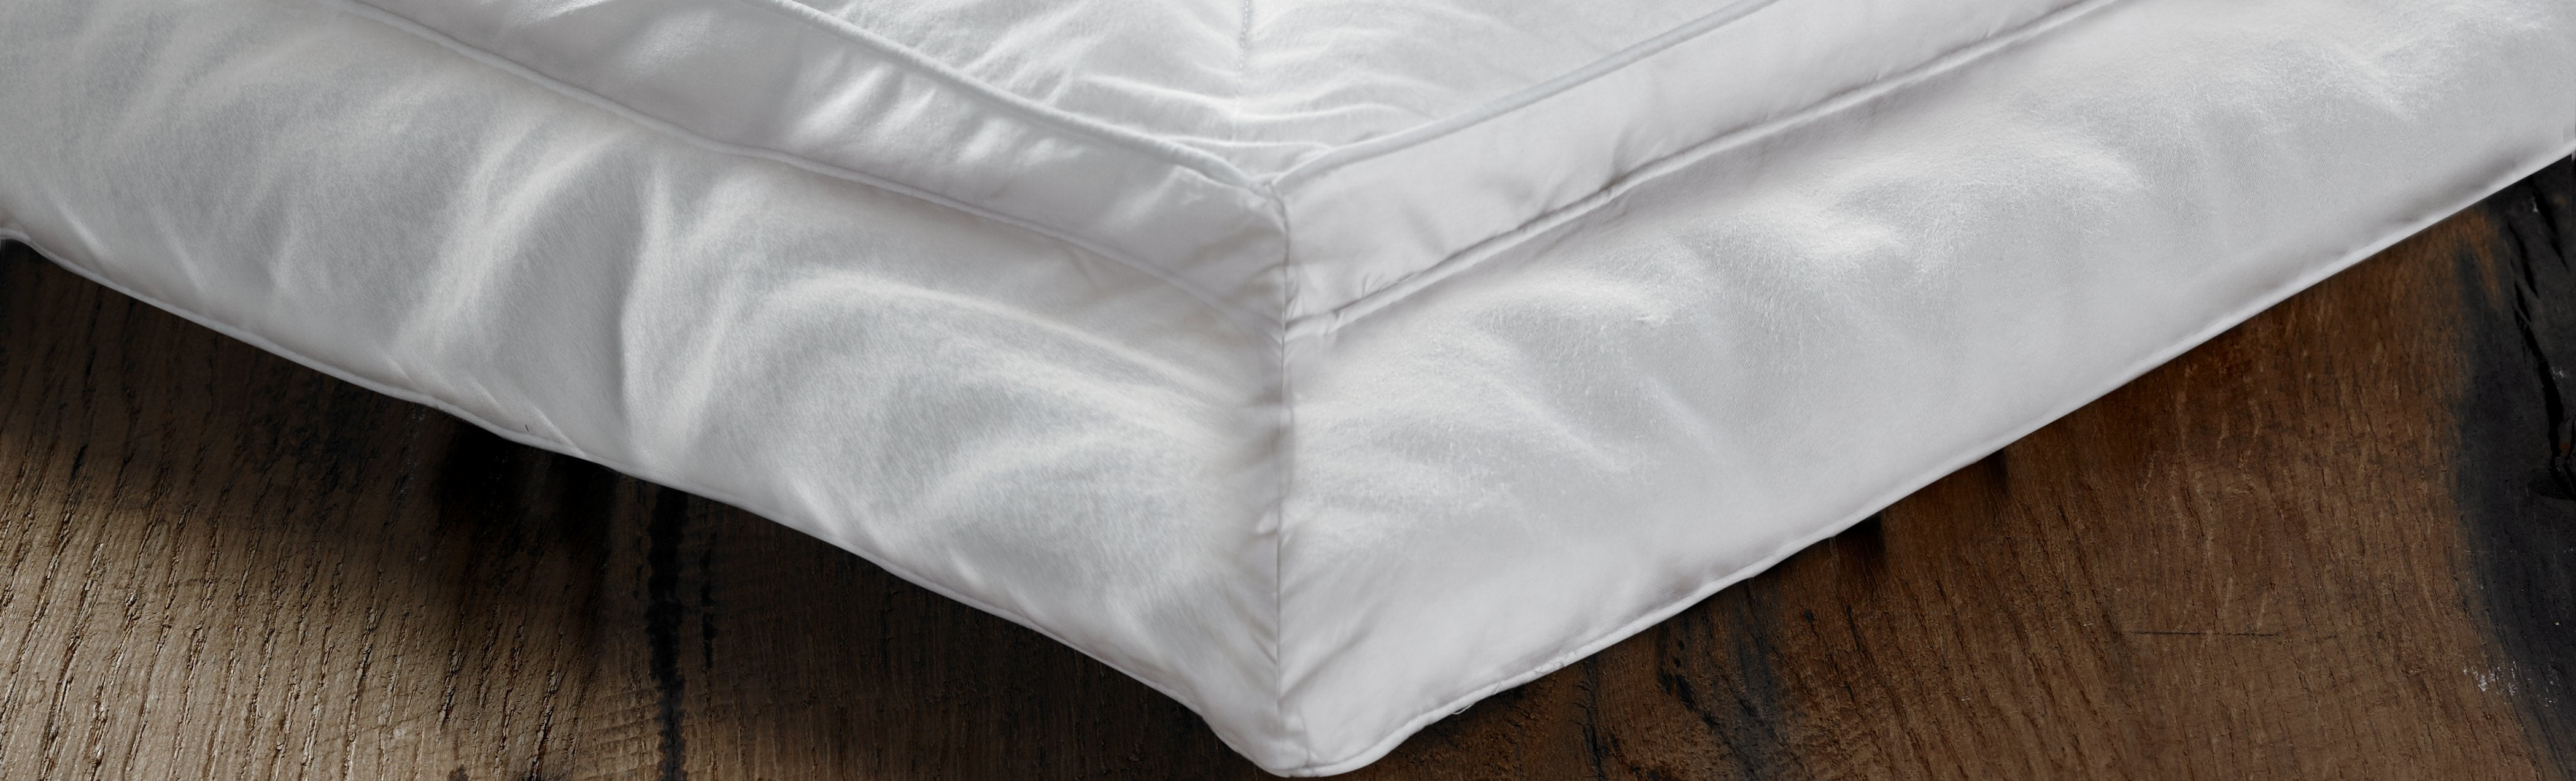 Single Bed Mattress Toppers - 3ft x 6ft 3